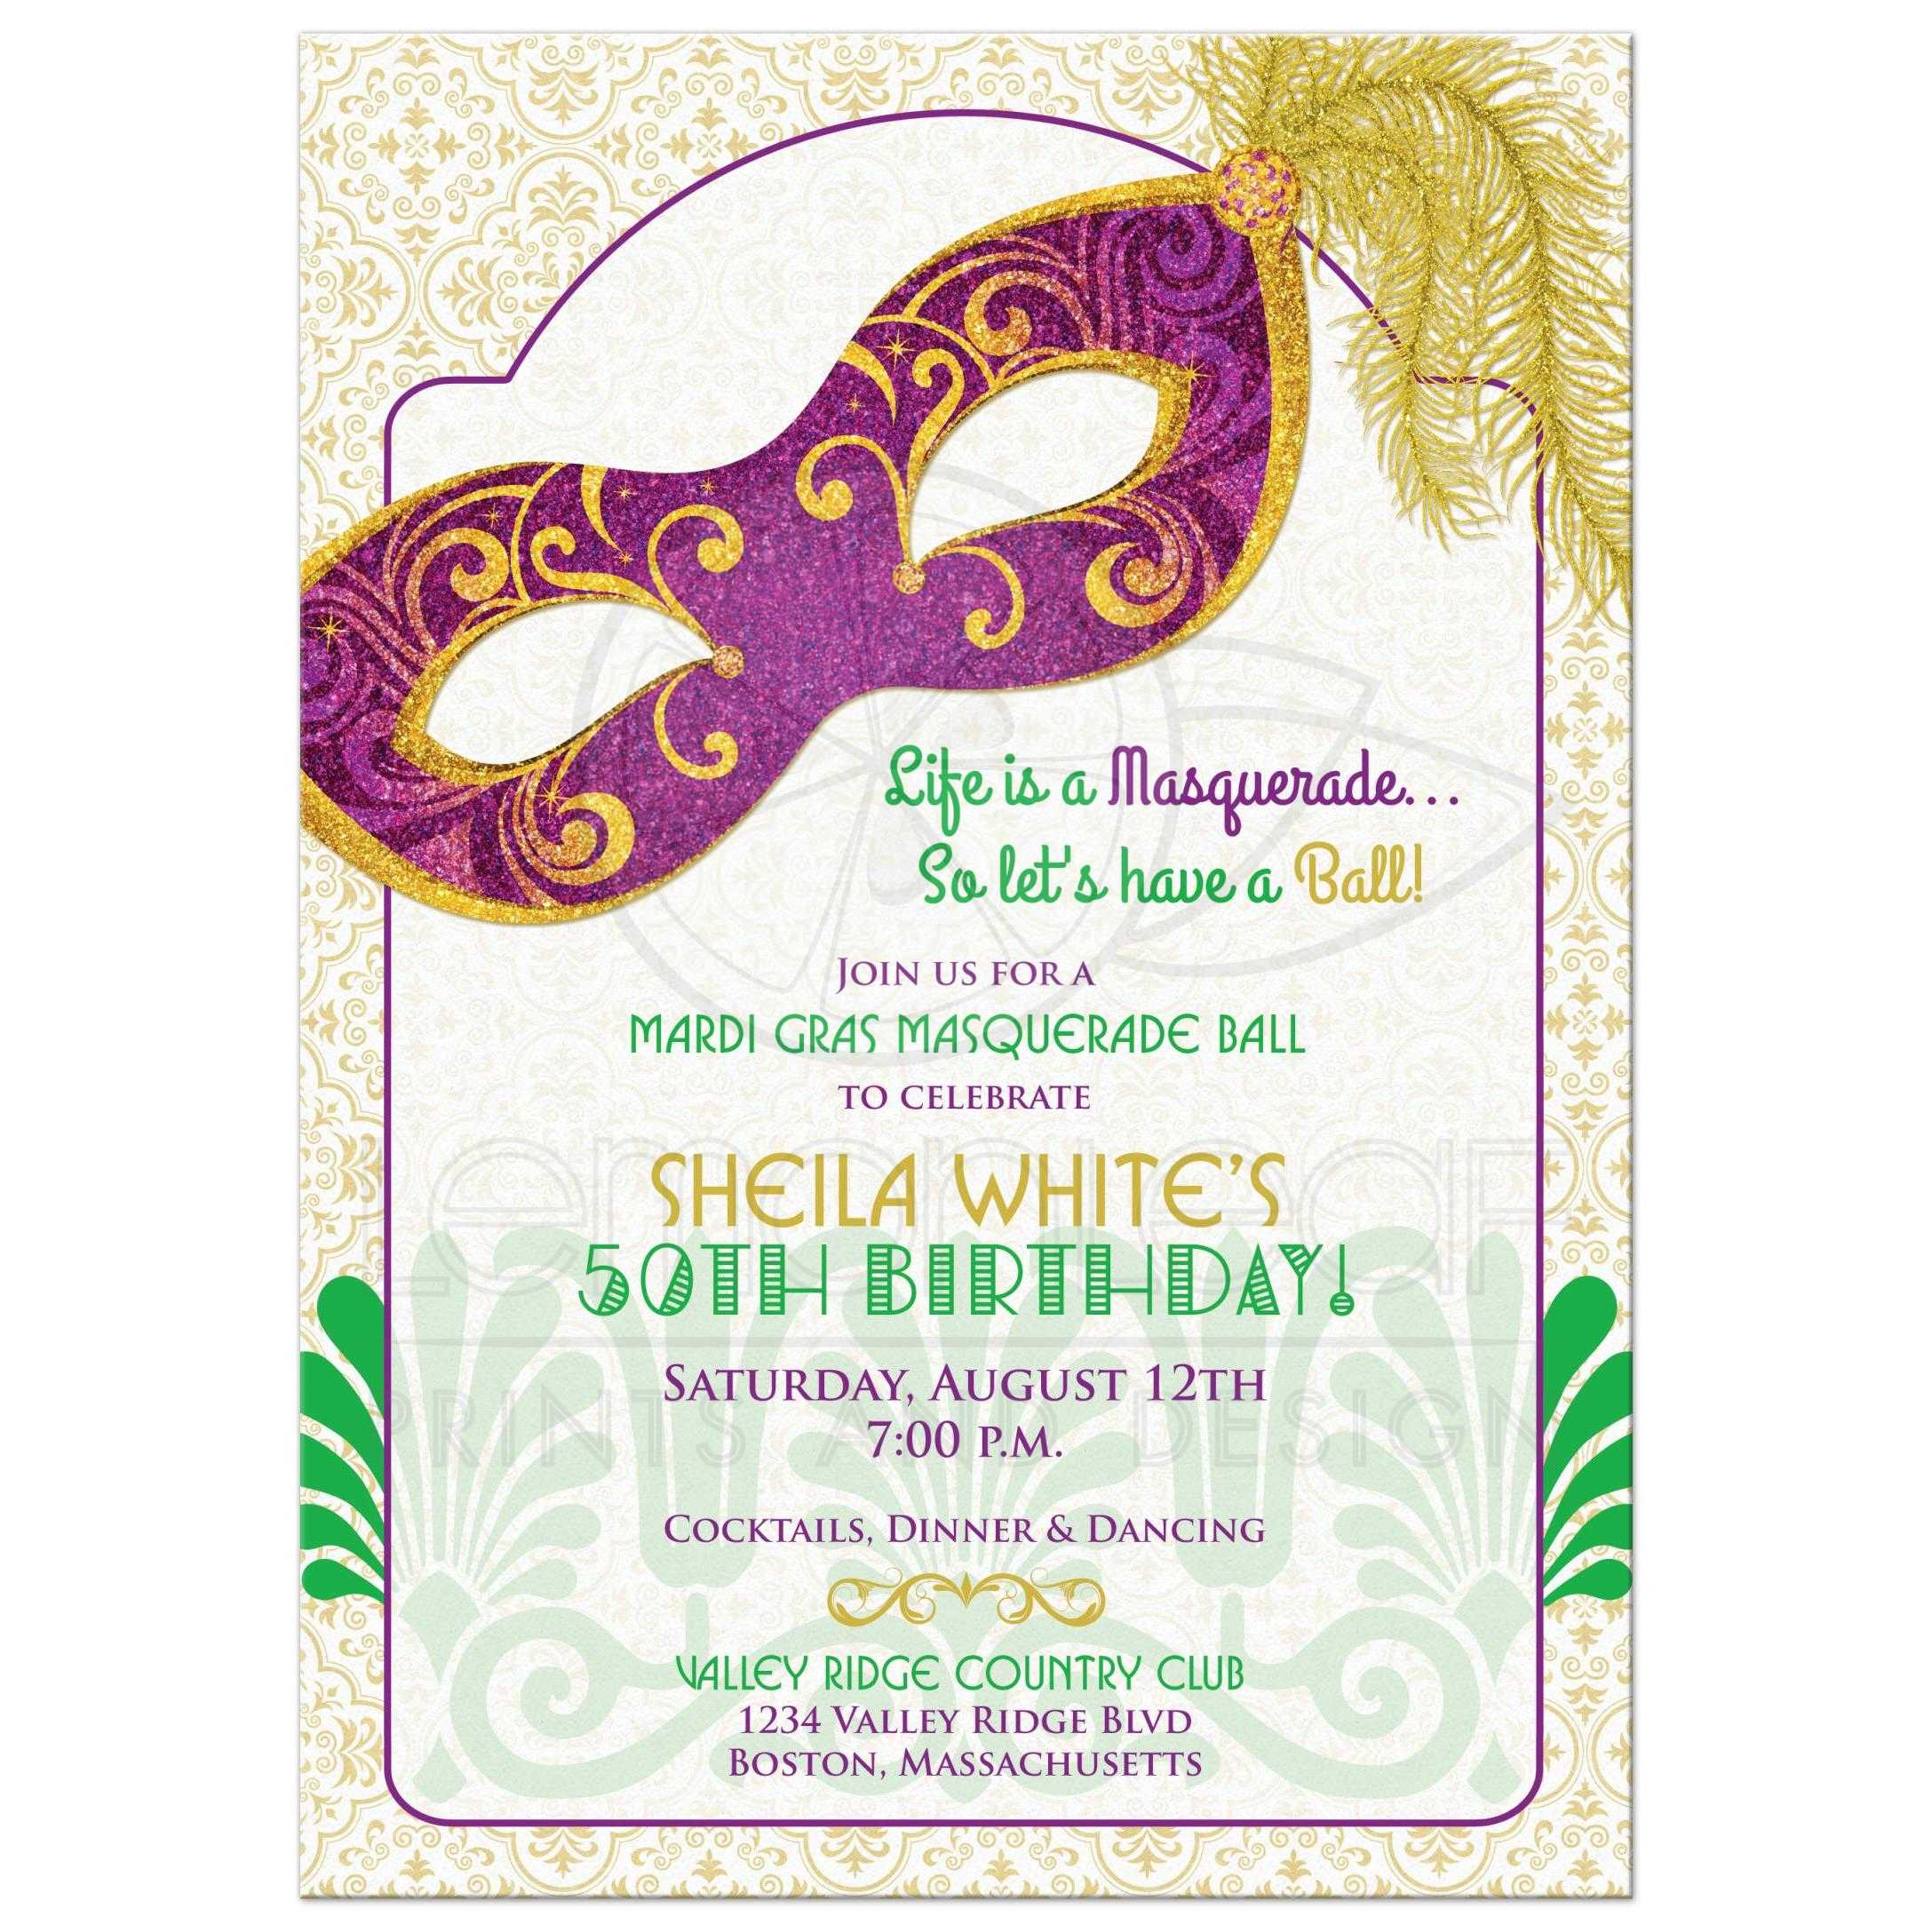 photo regarding Free Printable Mardi Gras Invitations identify Mardi Gras 50th Birthday Social gathering Invitation Masquerade Mask